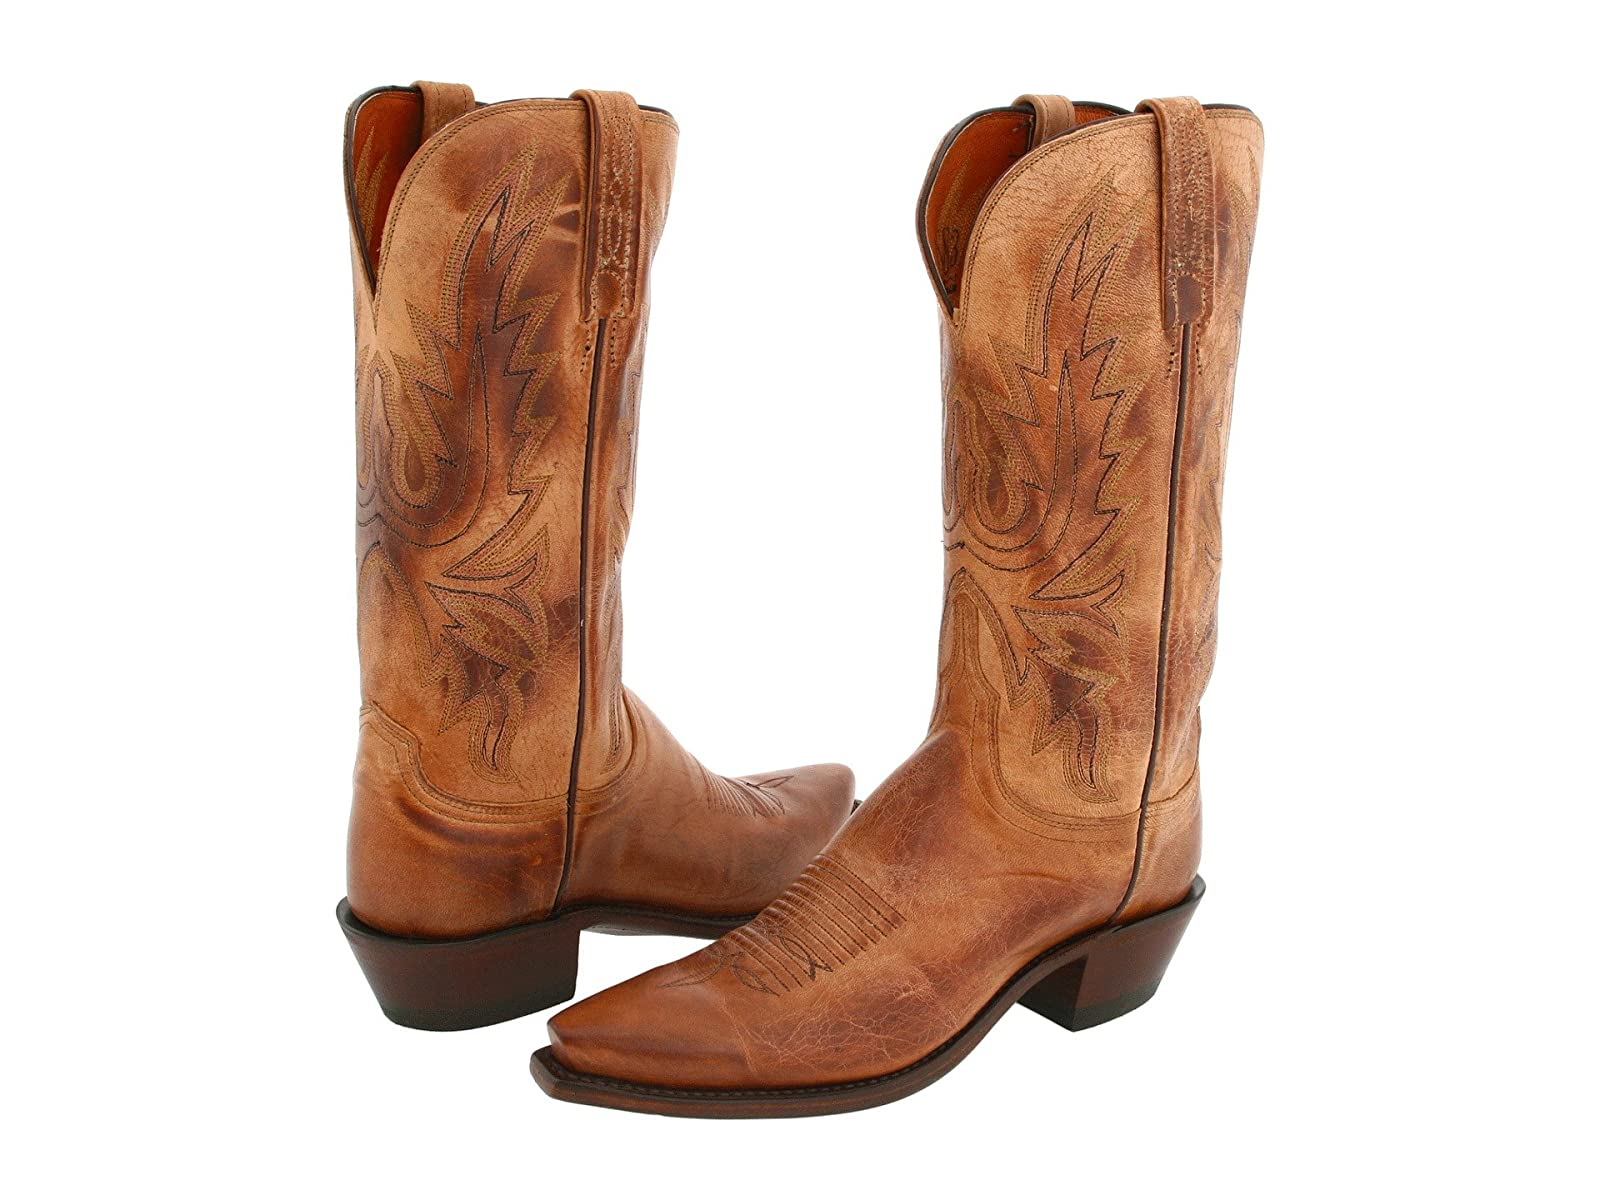 Lucchese N4540 5/4Affordable and distinctive shoes